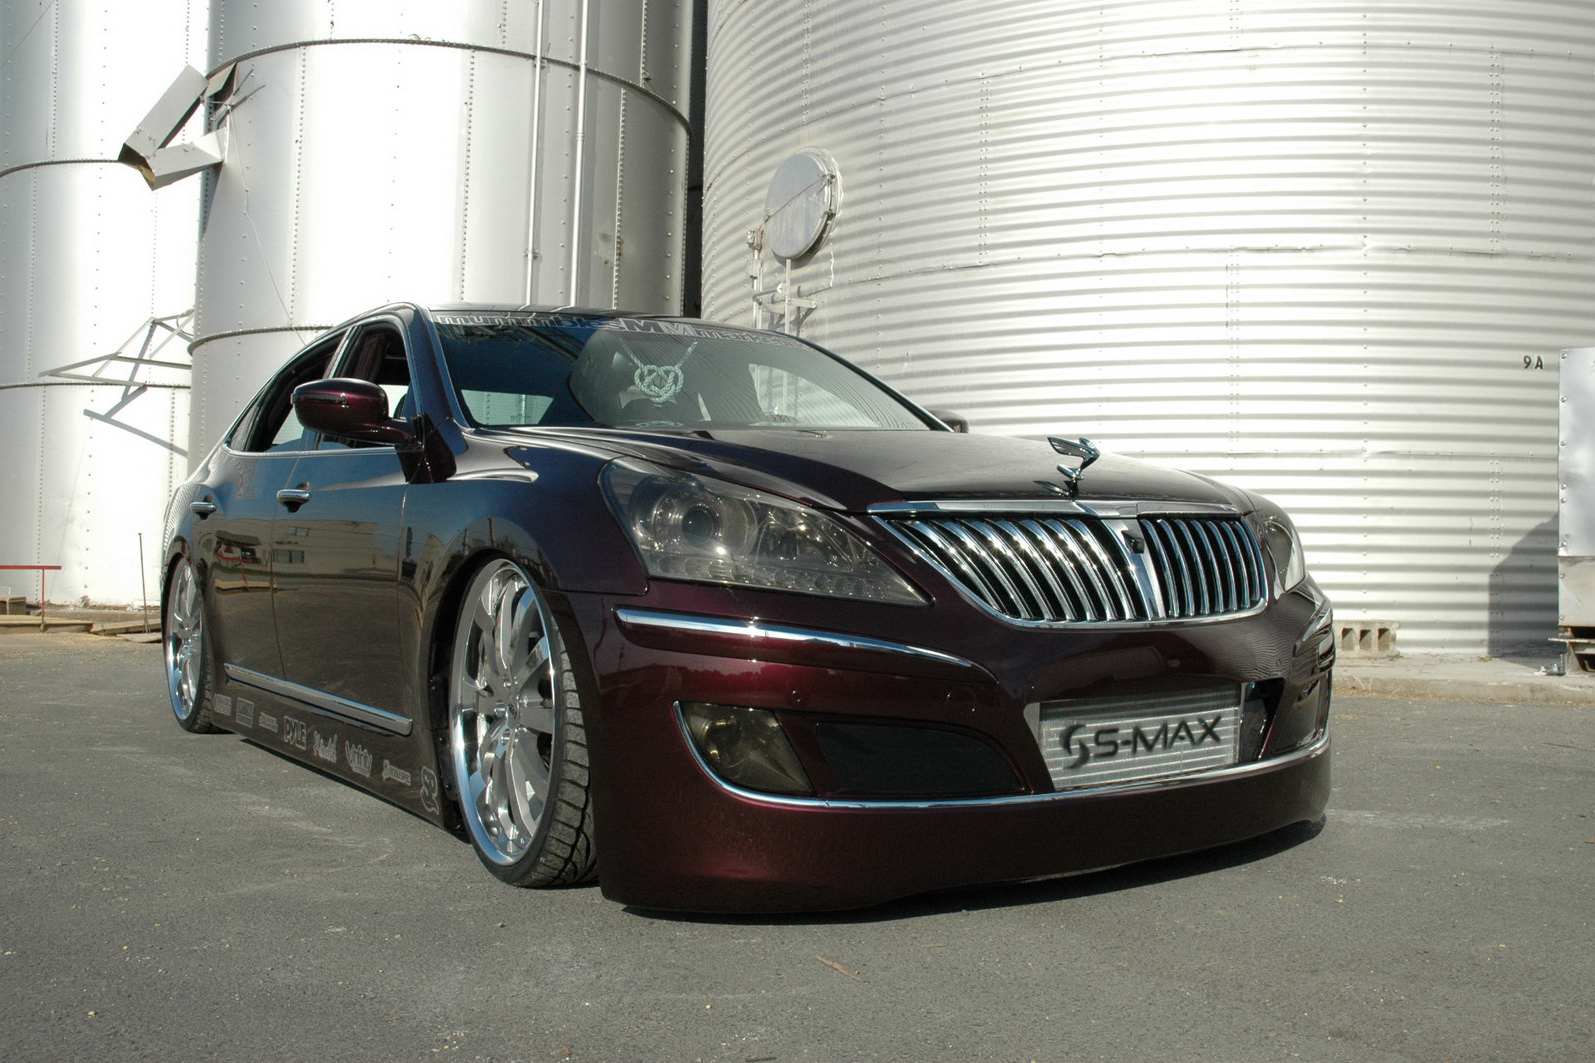 Mummbles Equus 2 2011 Hyundai Equus 450HP Turbo V8   Photos, Specifications, Reviews